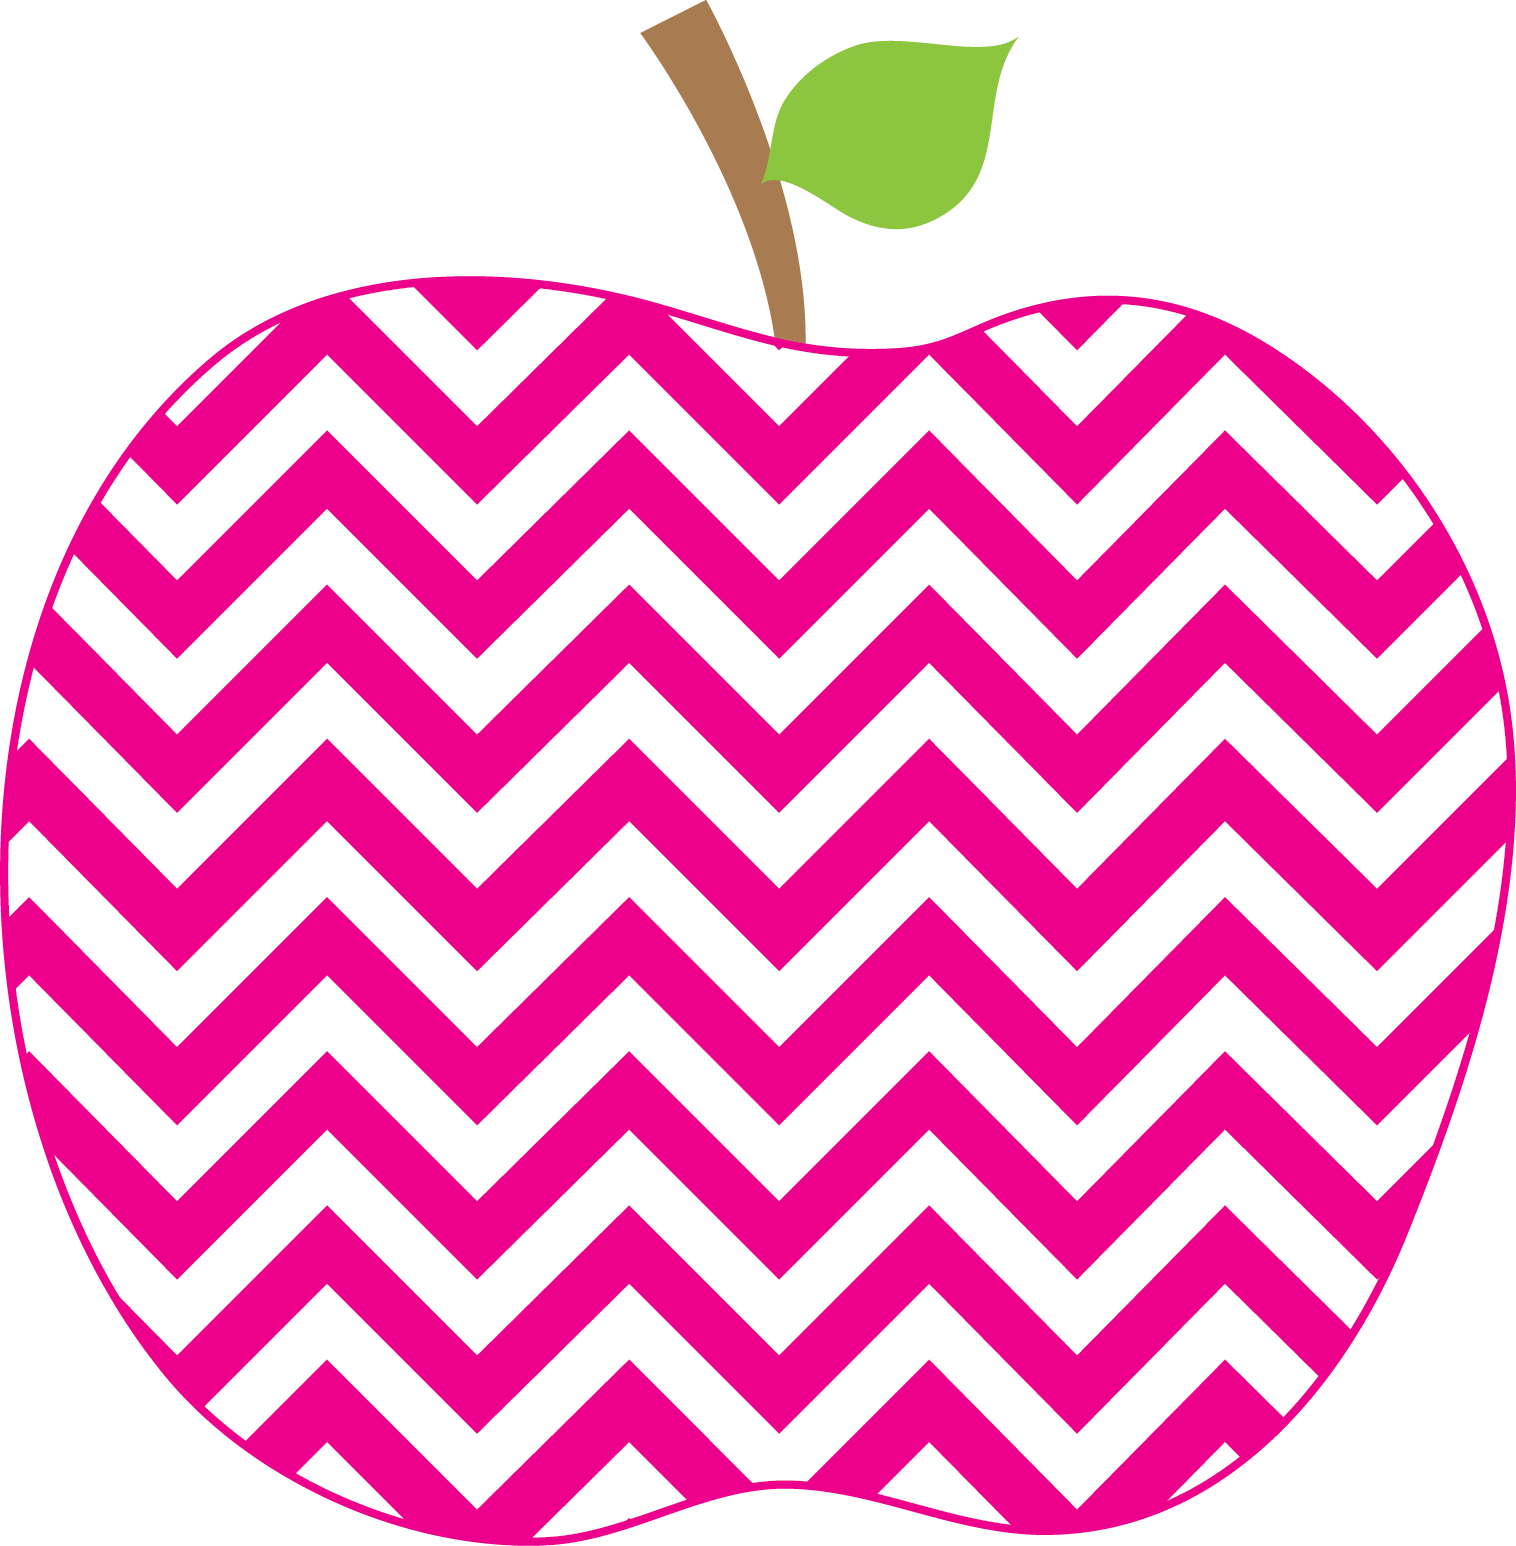 Chevron split apple clipart picture transparent stock 28+ Collection of Chevron Apple Clipart | High quality, free ... picture transparent stock